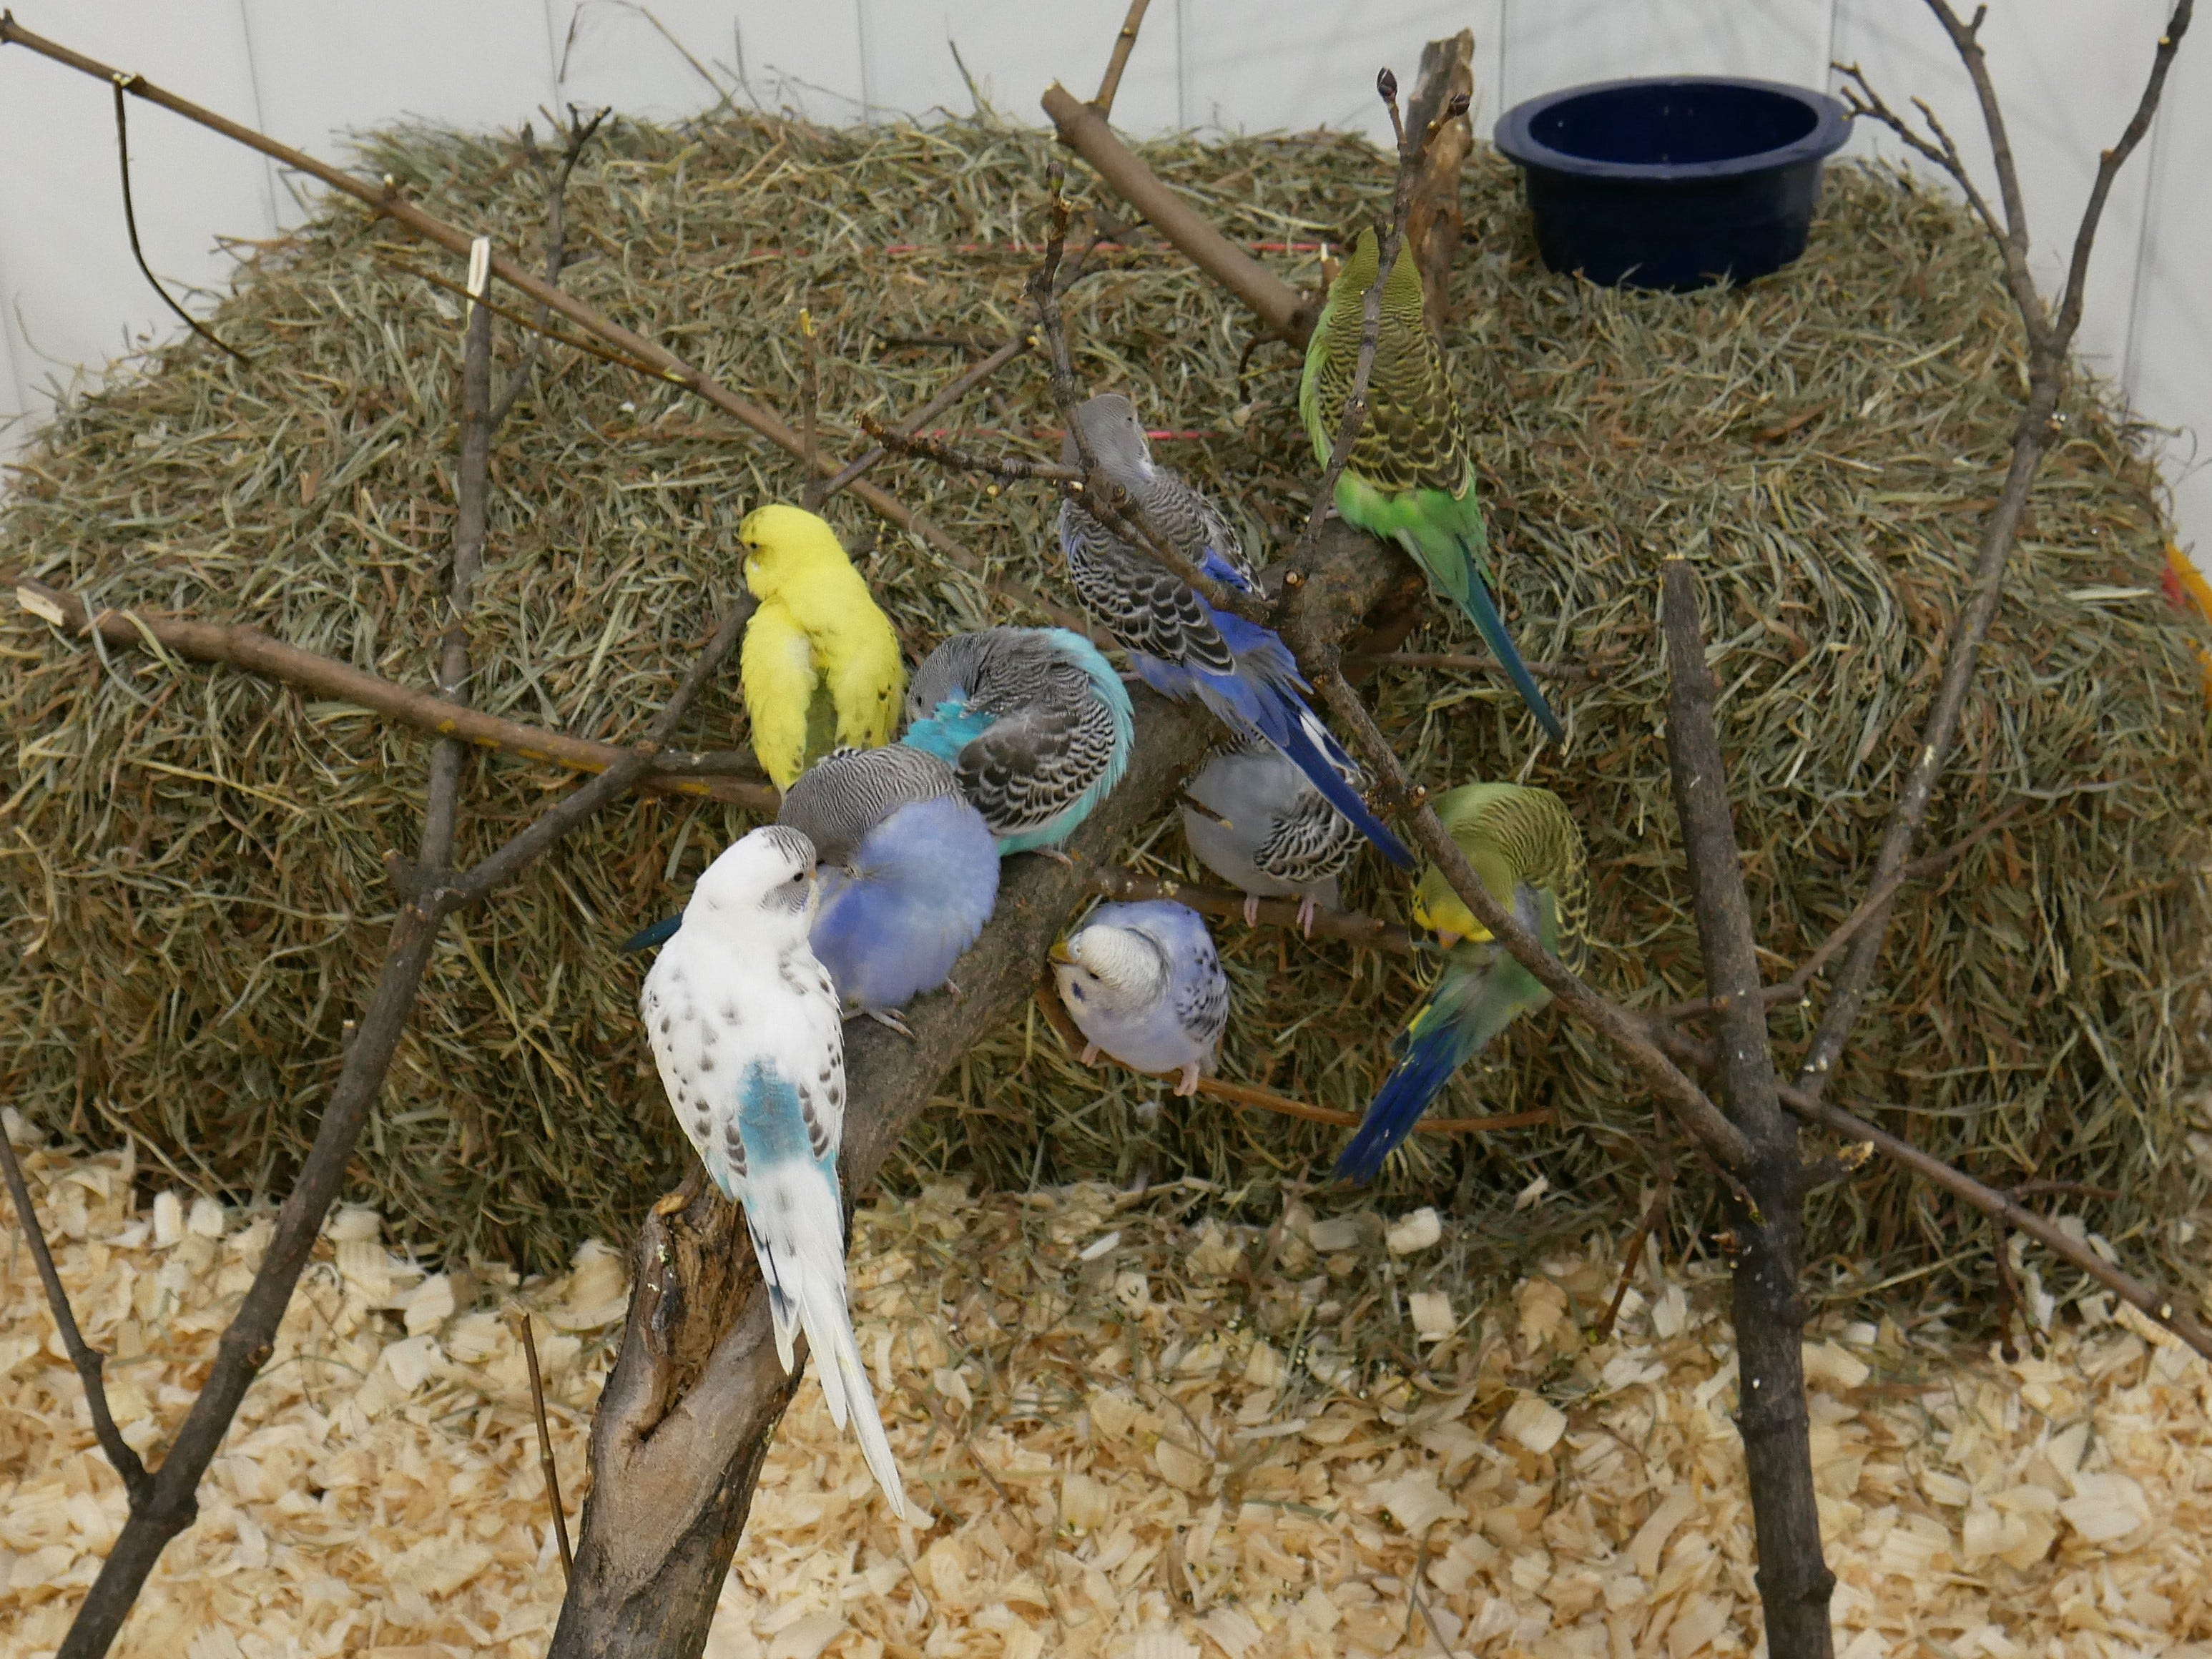 Some parakeets at the Natural History Exhibition on Nov. 17, 2018, at the Mid-Hudson Civic Center in Poughkeepsie. Little Ray's Nature Centers and ZooAmerica coordinated with the Foundation for Animal Rescue and Education for the weekend-long exhibit, which also features a sloth, porcupine, an armadillo, rabbits, tarantulas and more.